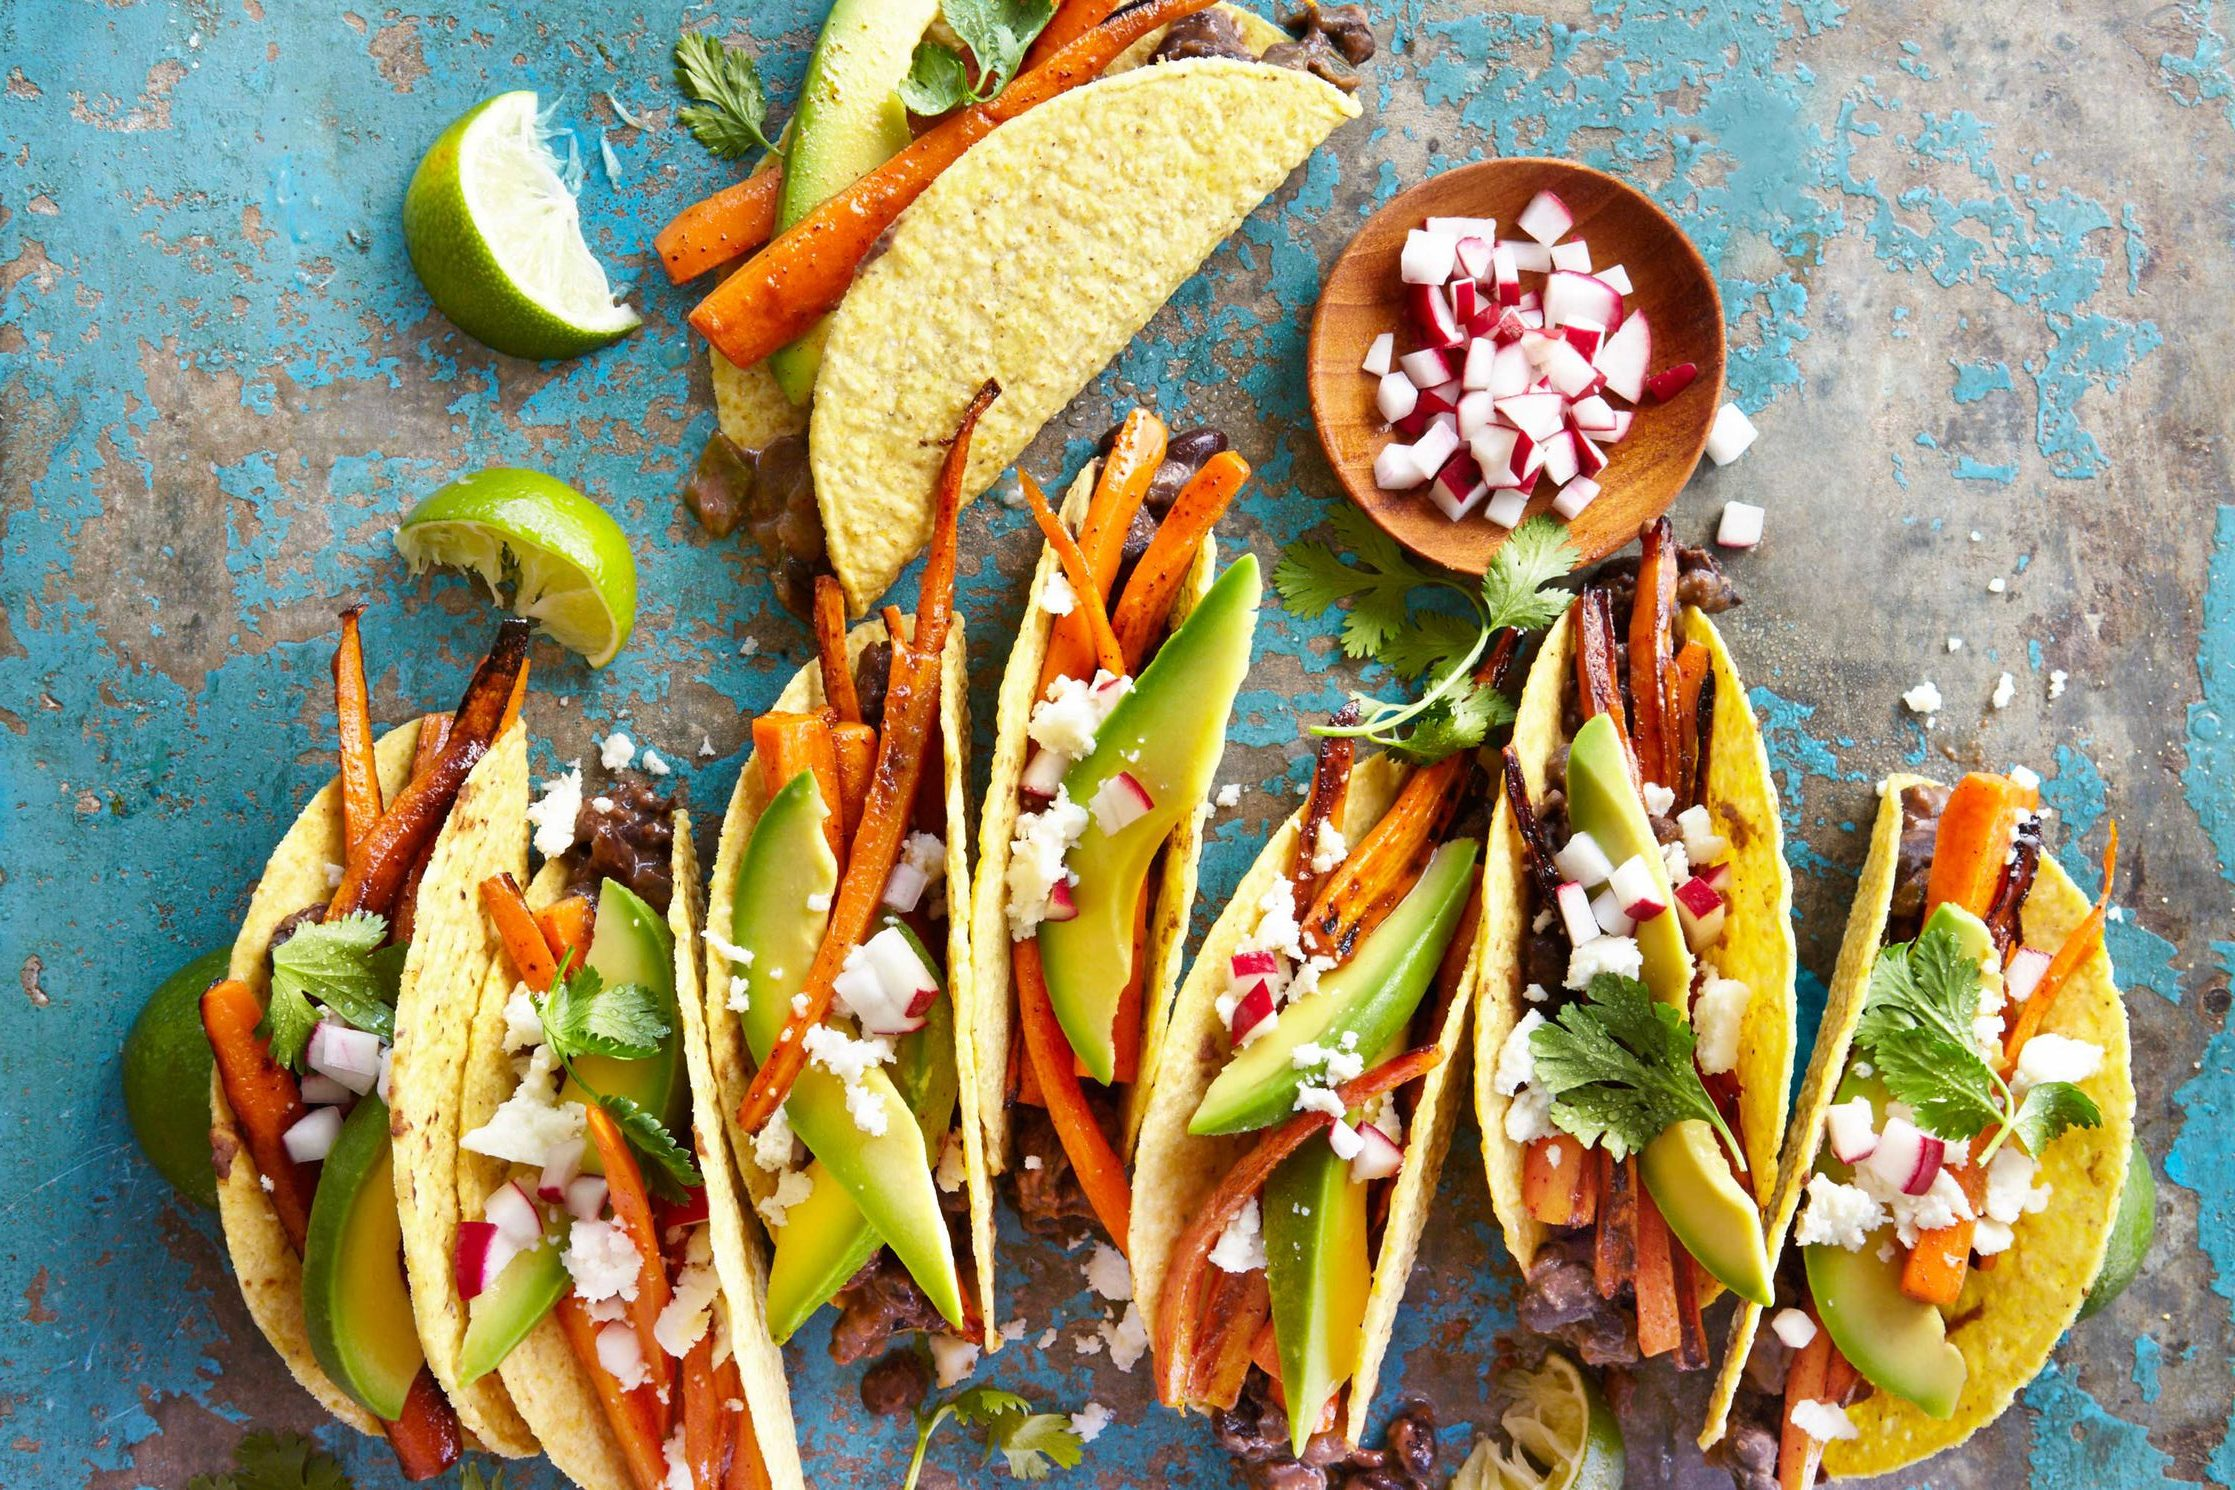 vegetarian-tacos-meal-ideas